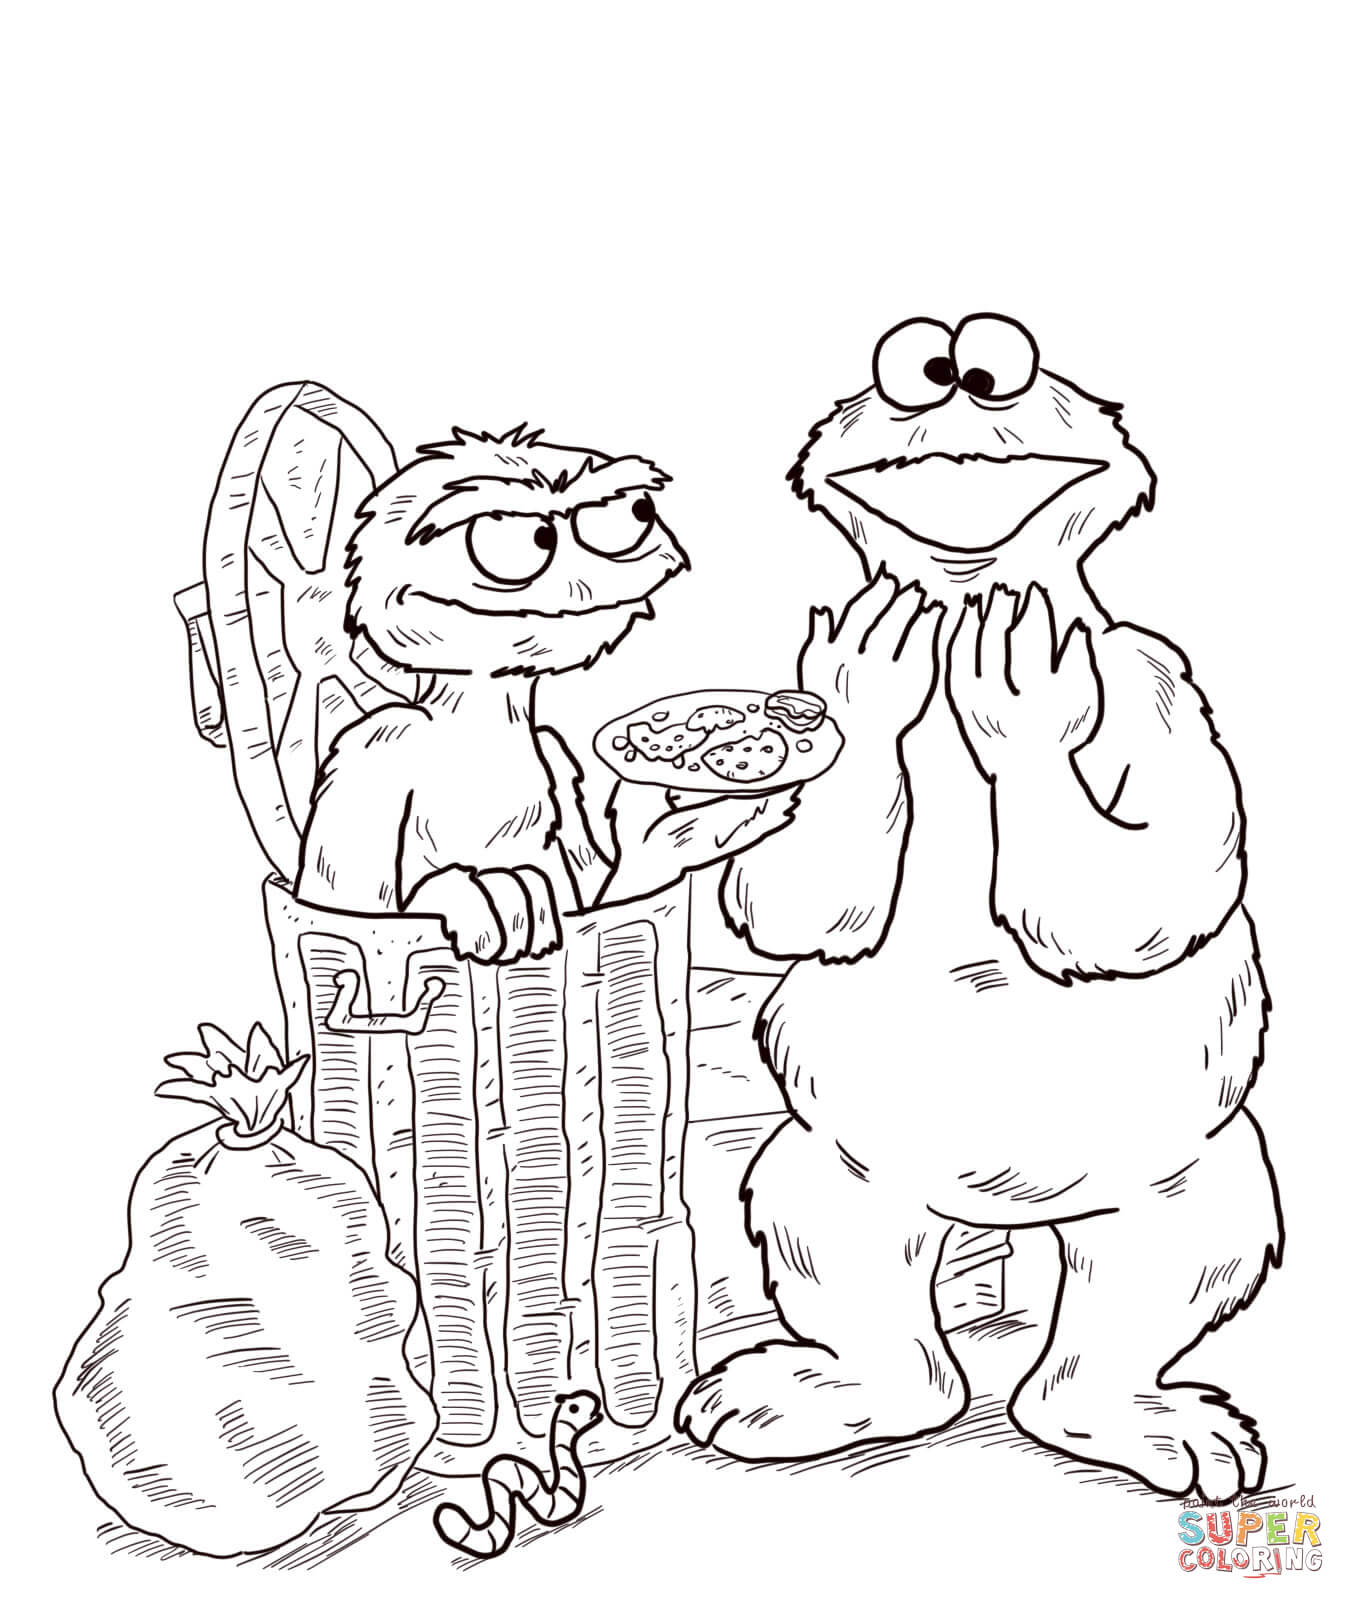 coloring pages oscar the grouch - photo#36